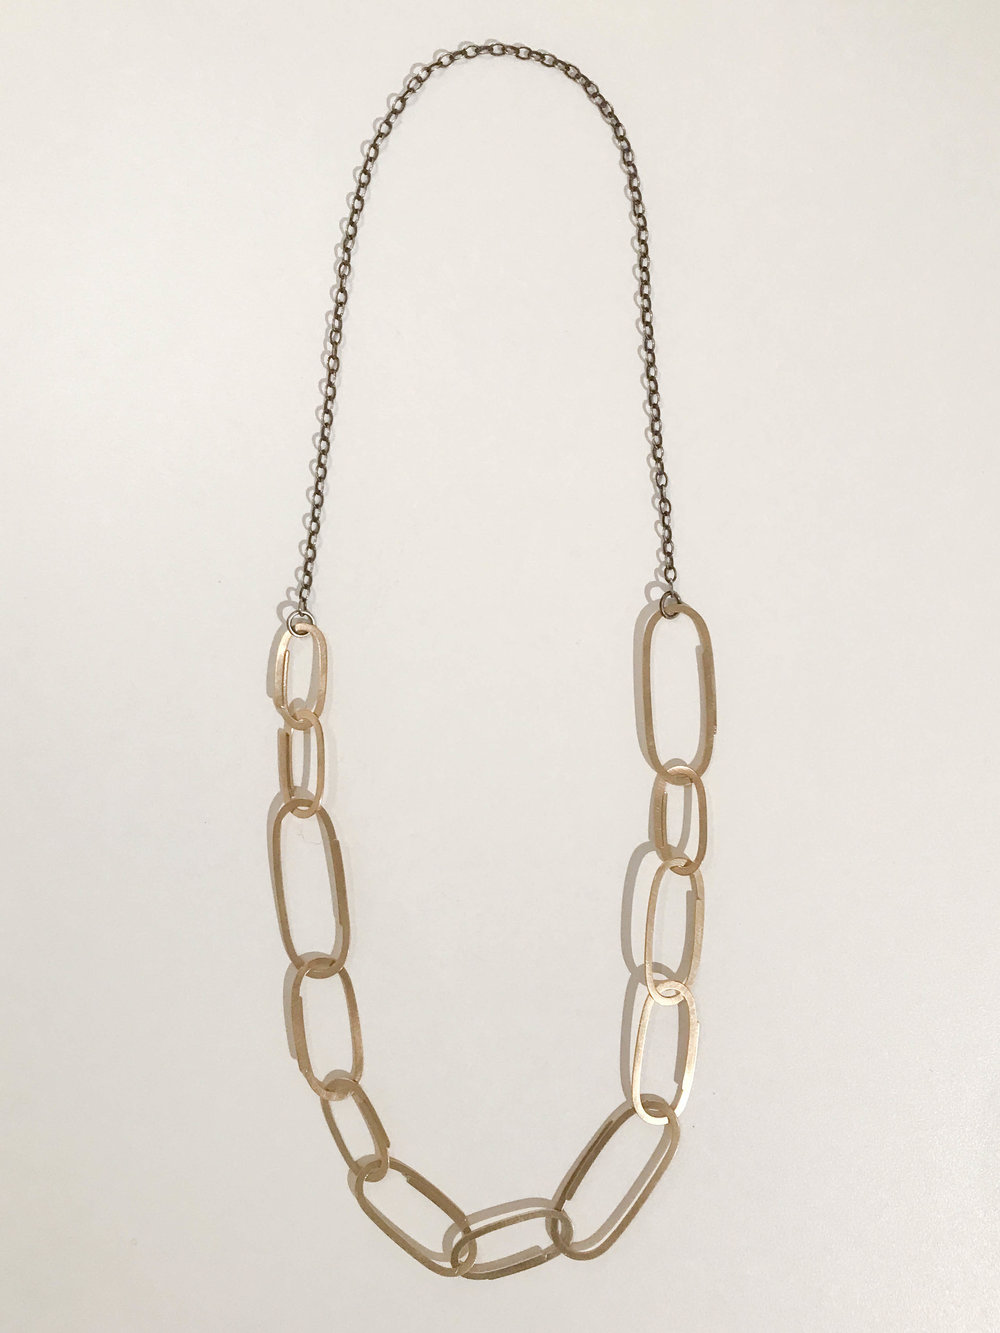 Brass clip link necklace, oxidized sterling silver and brass, $215